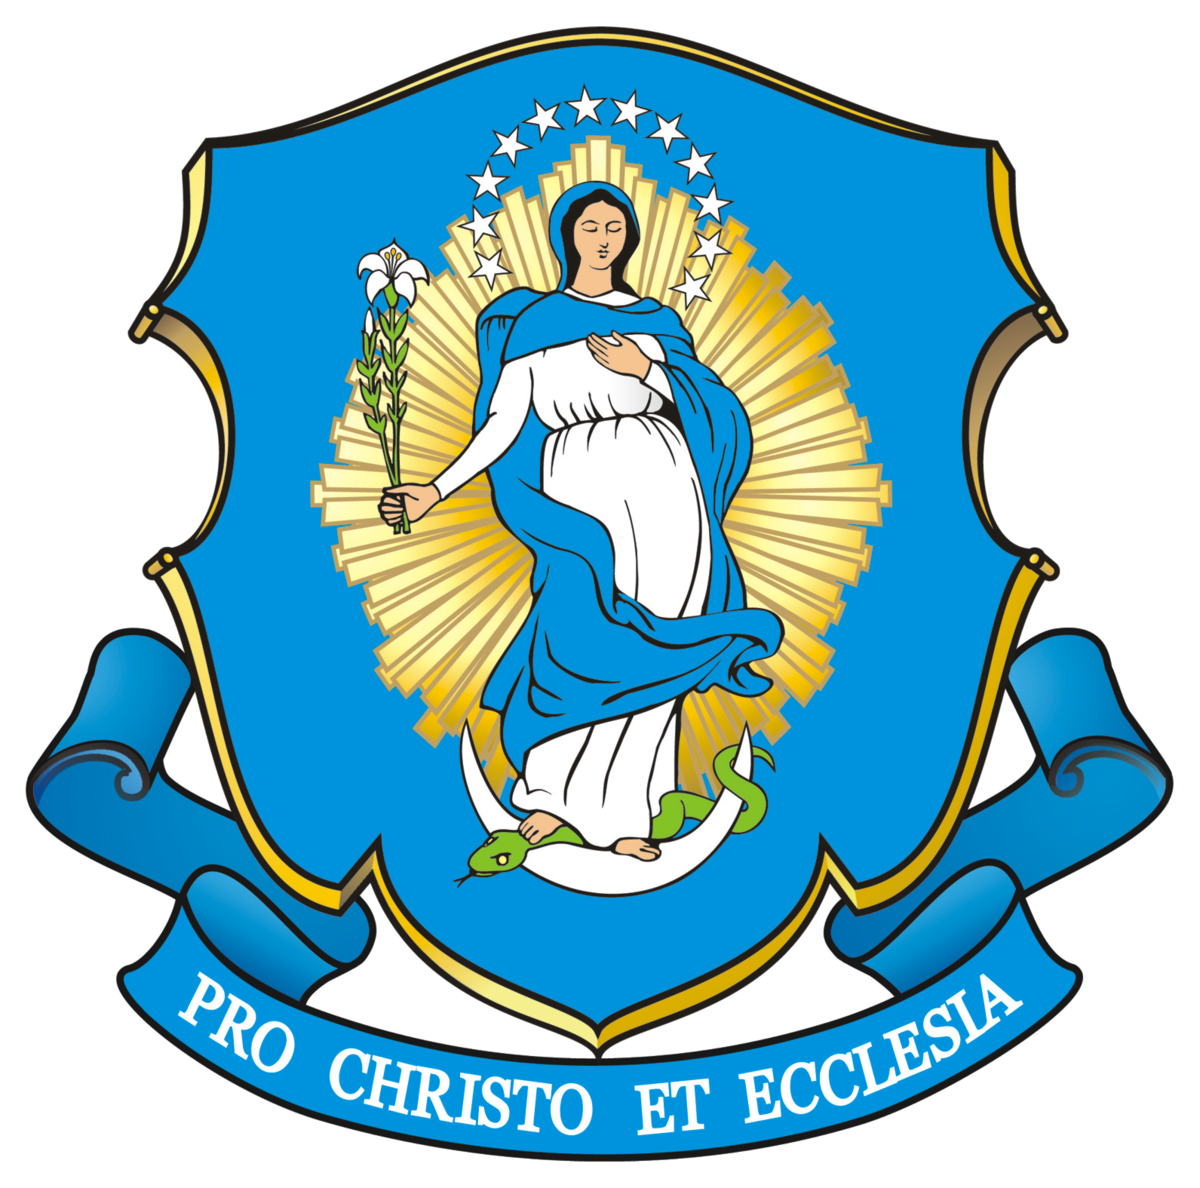 Congregation of Marian Fathers of the Immaculate Conception.